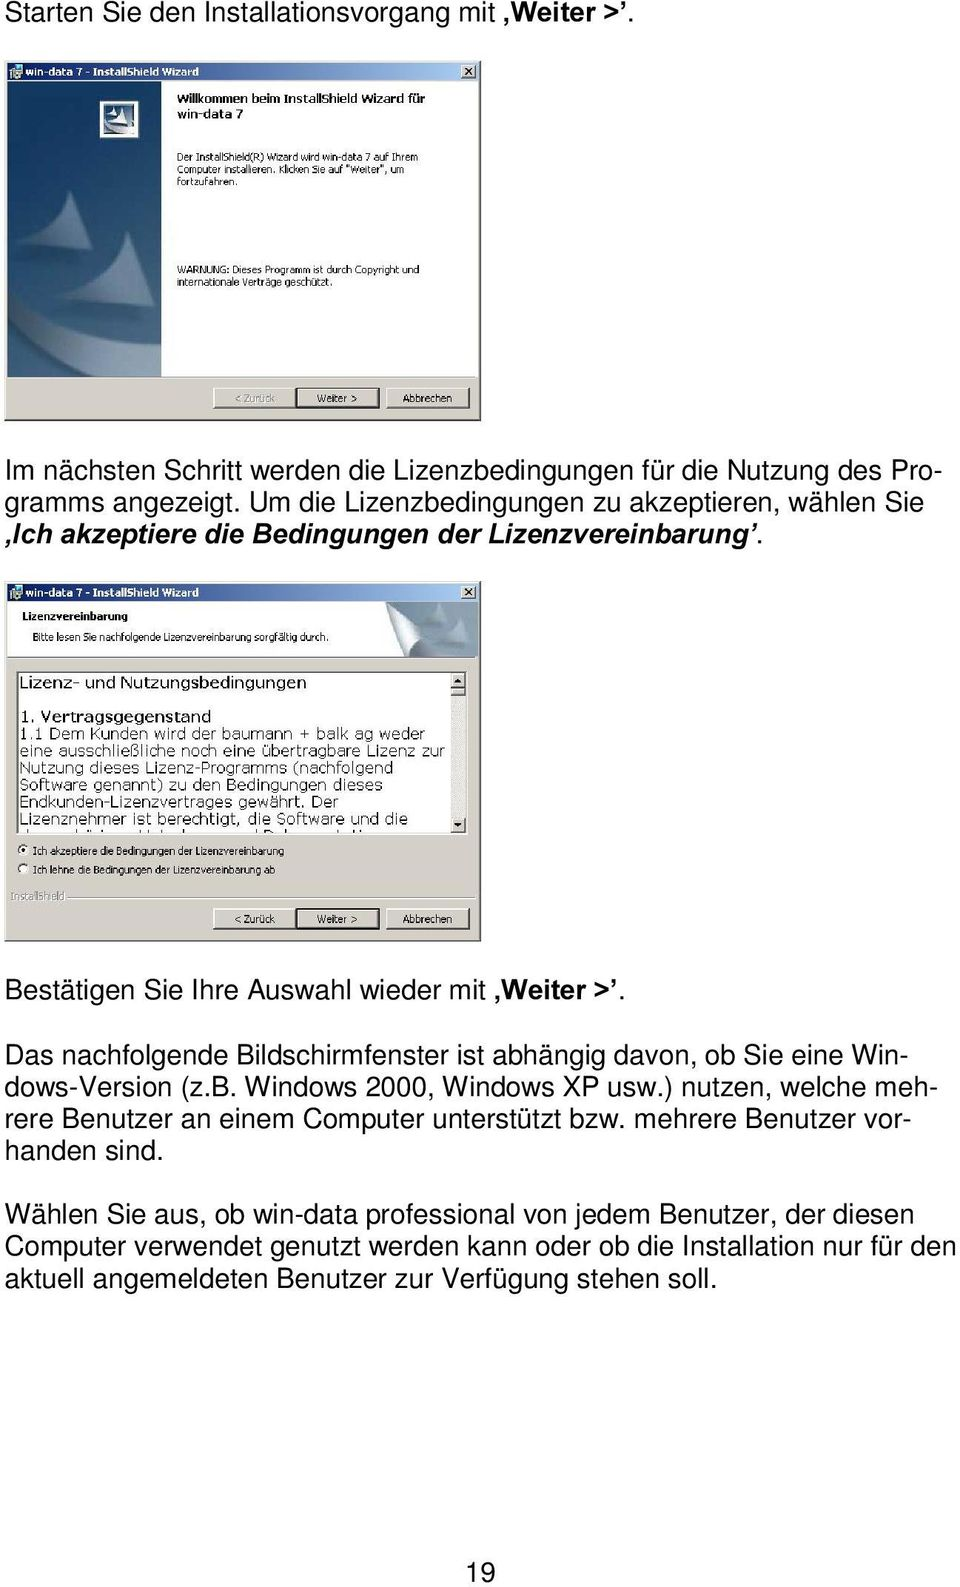 . Das nachfolgende Bildschirmfenster ist abhängig davon, ob Sie eine Windows-Version (z.b. Windows 2000, Windows XP usw.